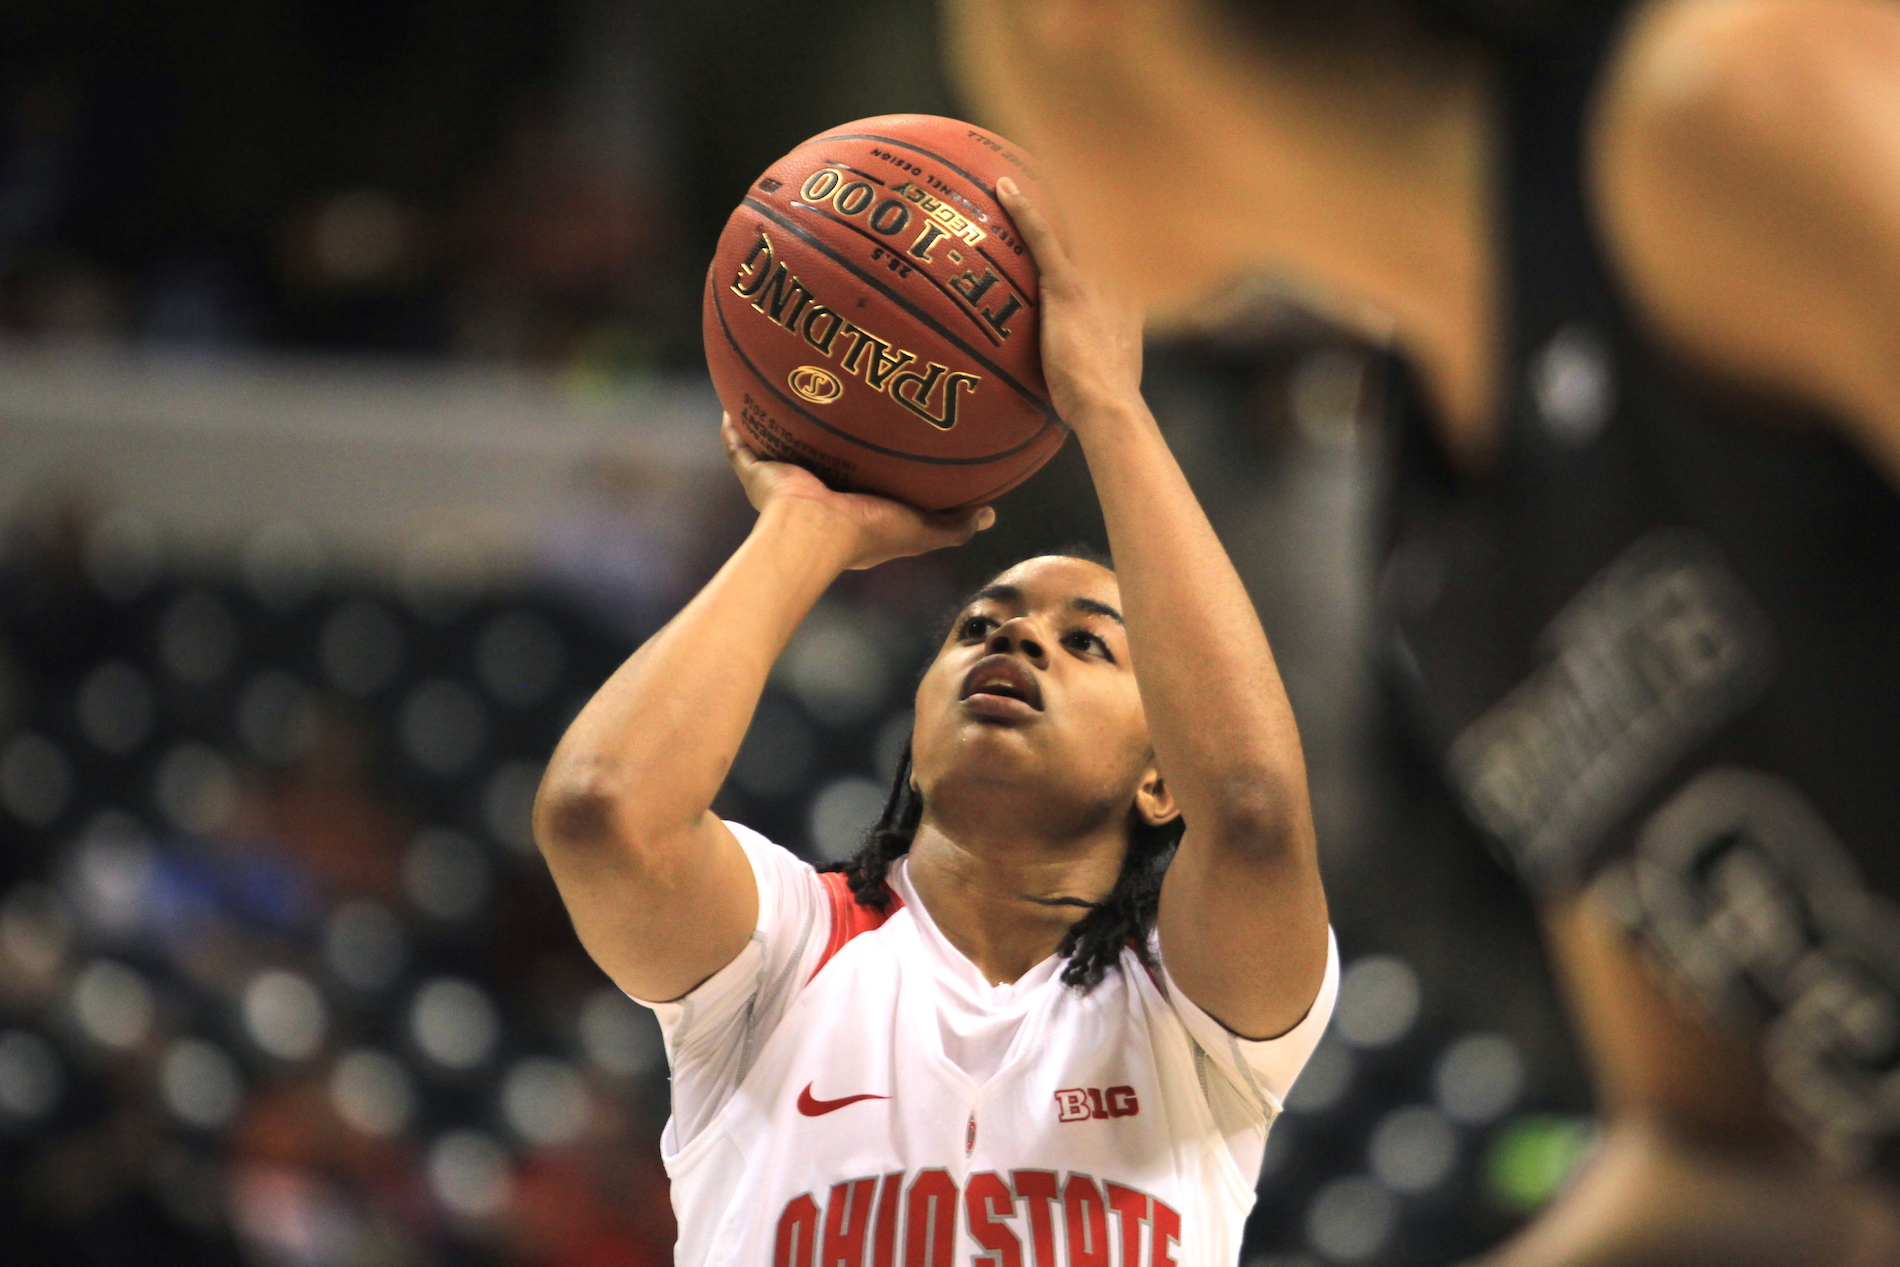 OSU sophomore guard Asia Doss (20) shoots a free throw during the second half a game against Michigan State in the Big Ten tournament on March 5 in Indianapolis. OSU lost, 82-63. Credit: Kevin Stankiewicz | Asst. Sports Editor